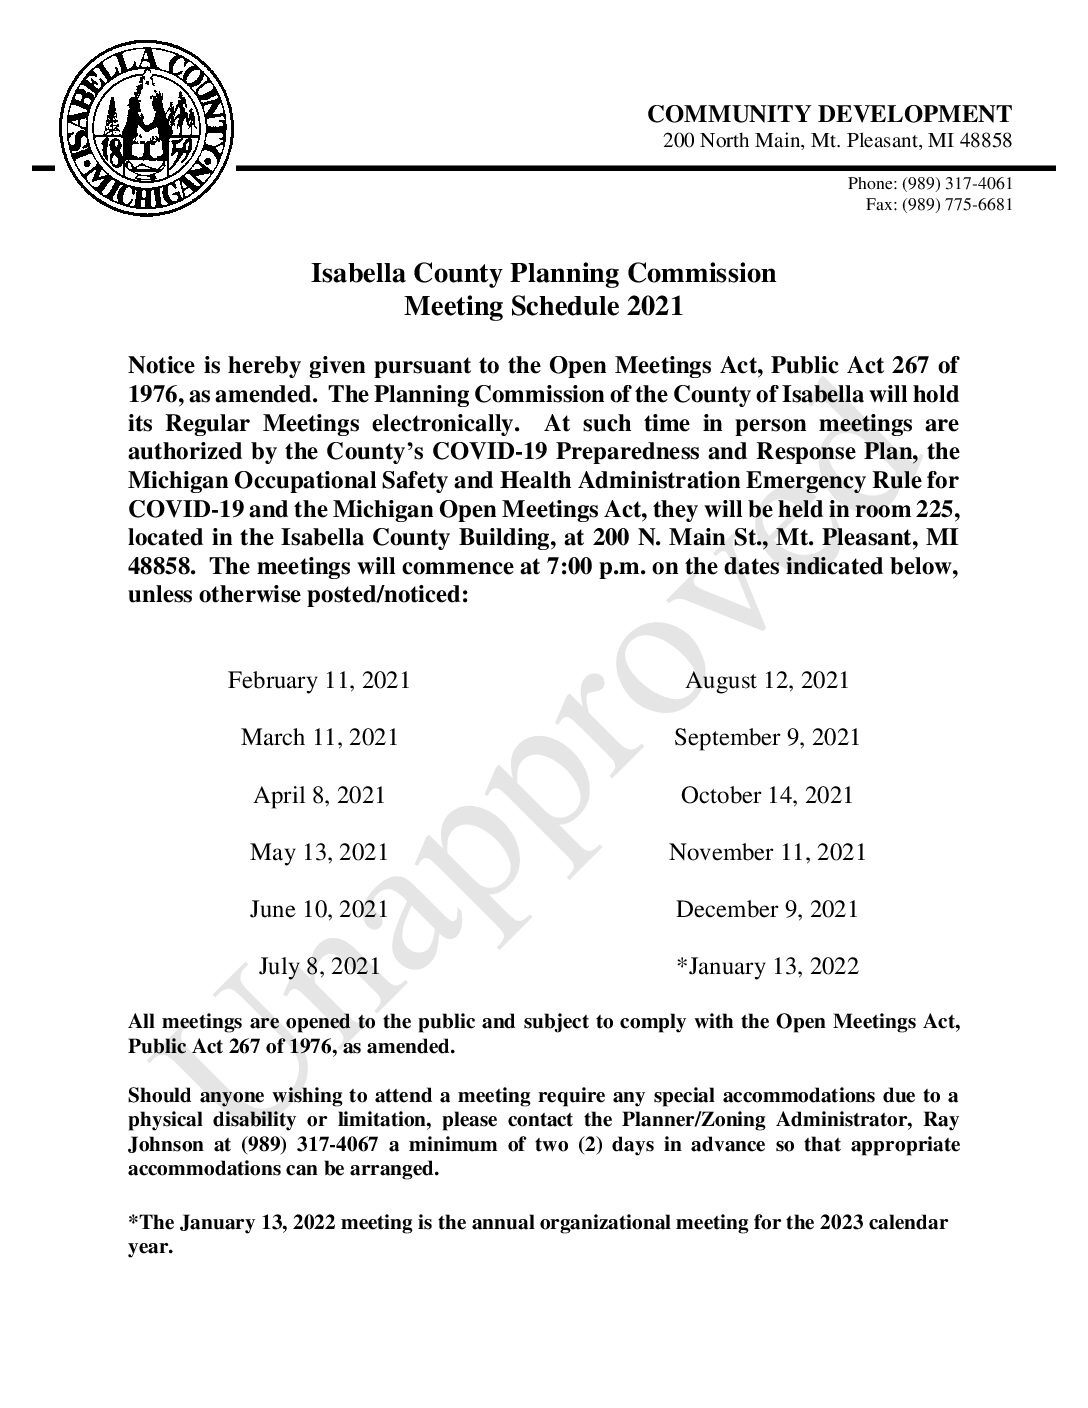 preview image of first page 2021 Proposed Planning Commission Meeting Schedule